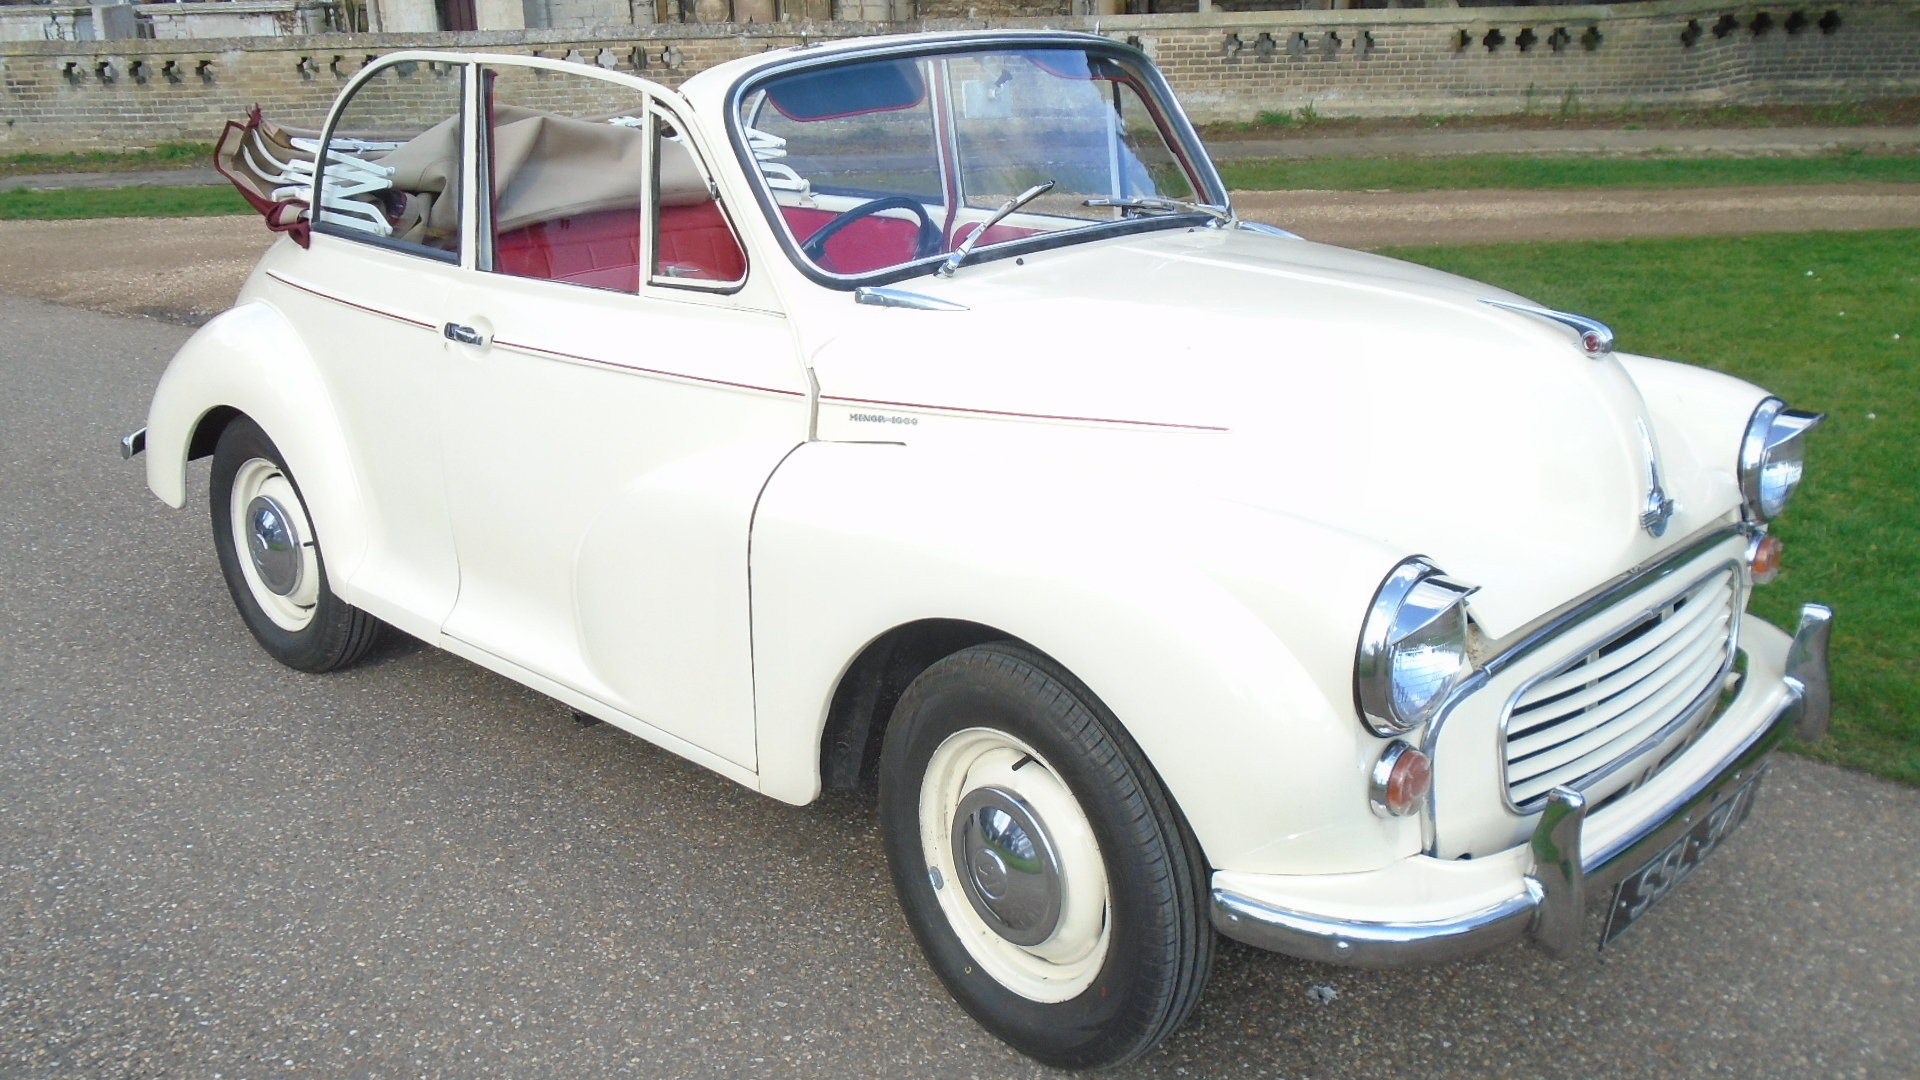 1962 Morris Minor Convertible, Genuine Tourer. For Sale (picture 1 of 10)